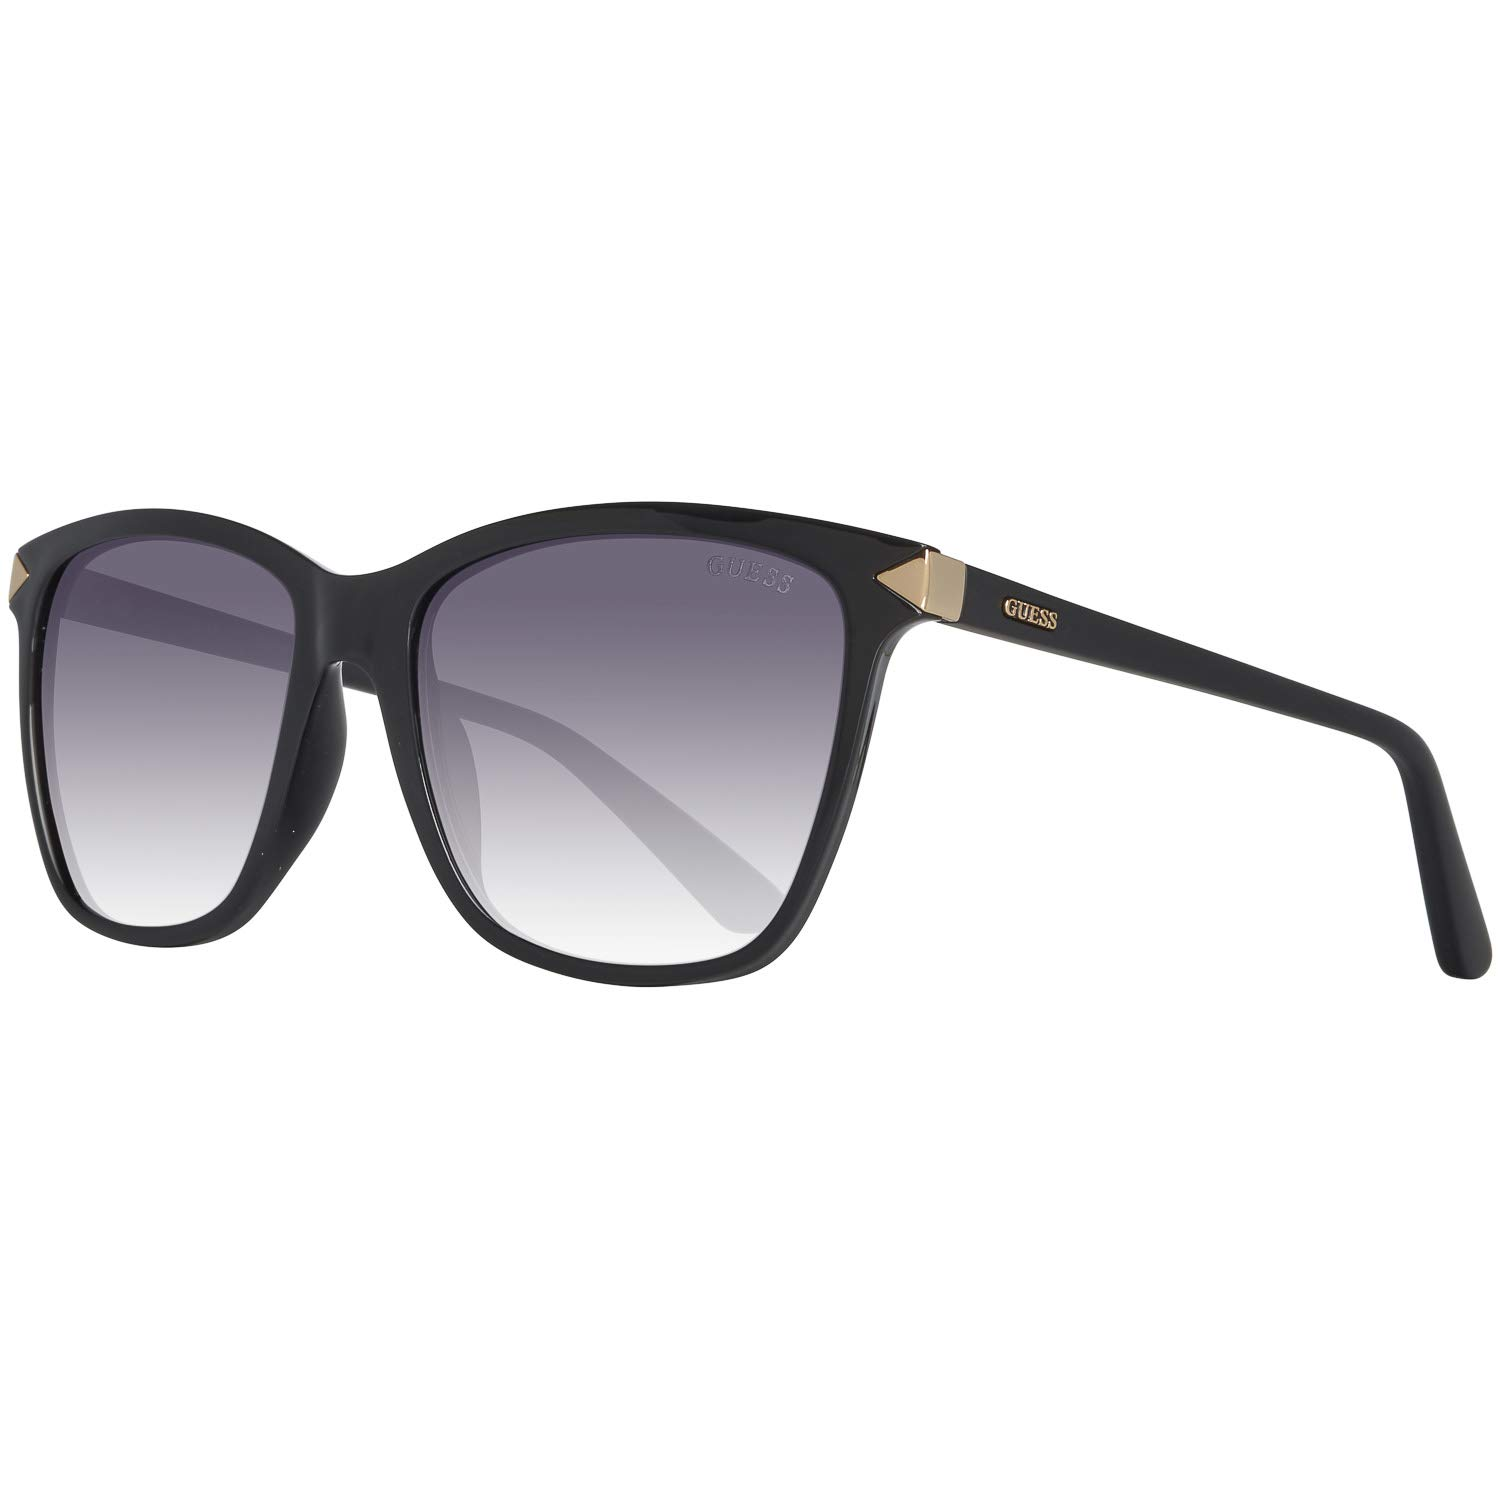 Guess GU 7499 Gafas de sol, Negro (Black/Other/Gradient ...